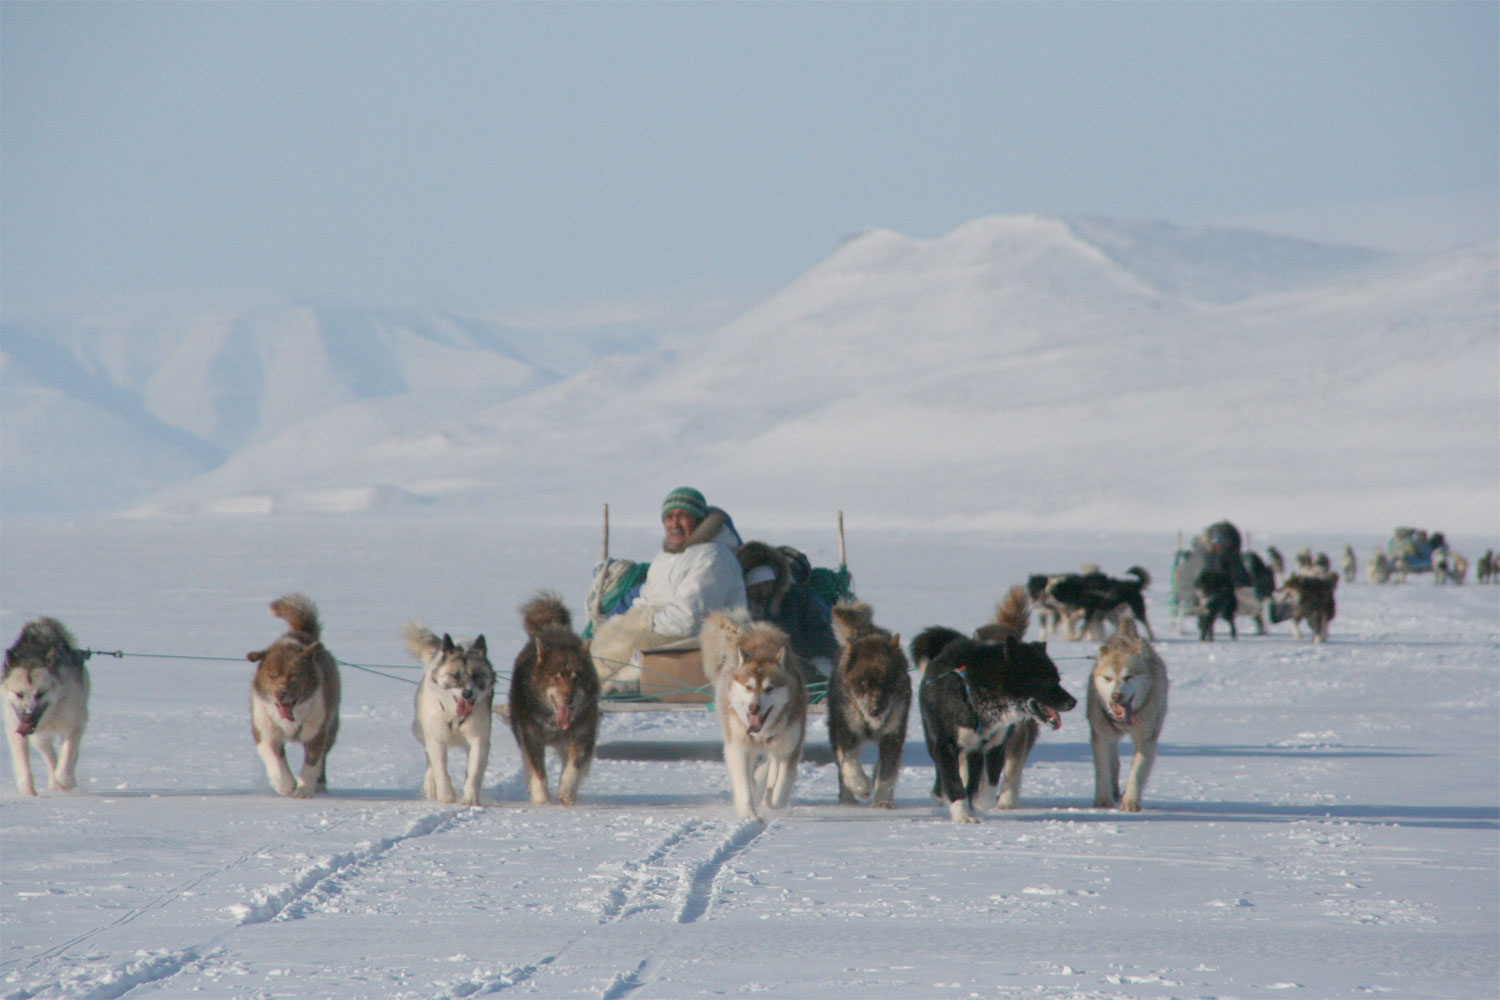 (Photo: Andy Mahoney) For transportation, people in the arctic often travel by sled pulled by a pack of huskies.